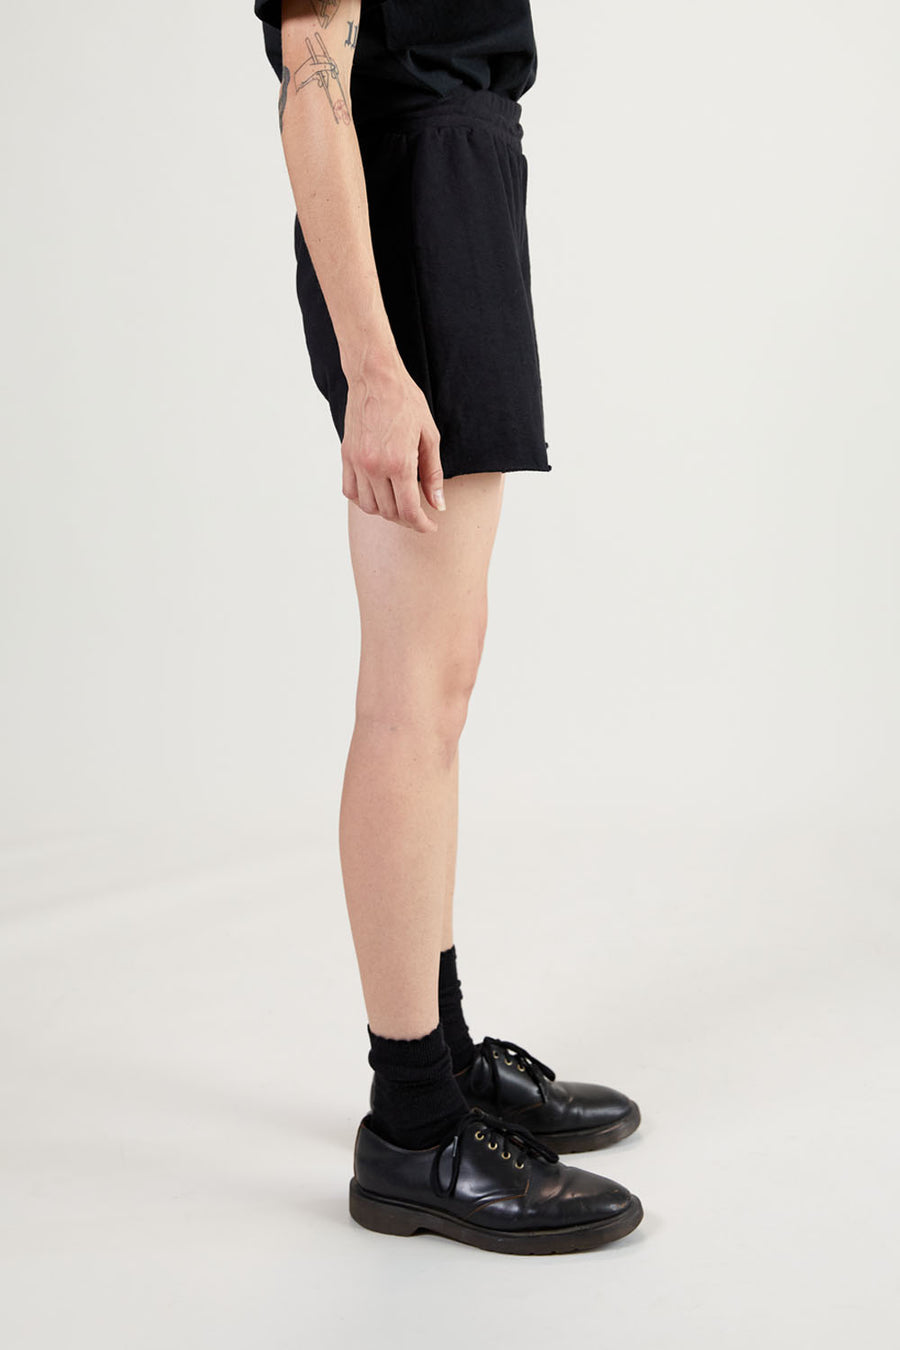 Recycled Terry Women's Short | Faded Black